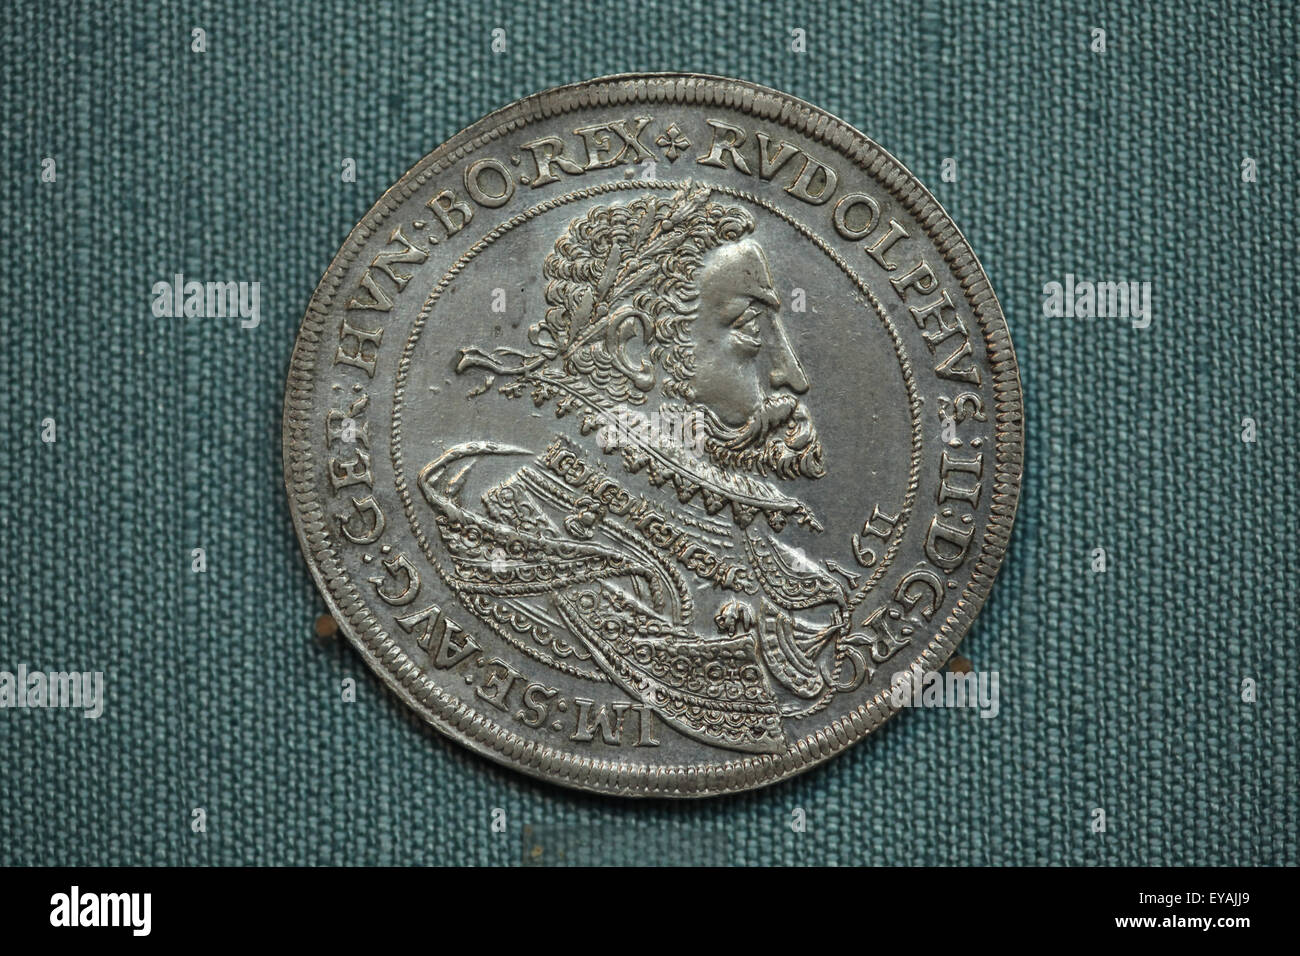 Thaler of Emperor Rudolf II. Silver coin minted in the reign of Holy Roman Emperor Rudolf II in Ensisheim (1611). - Stock Image